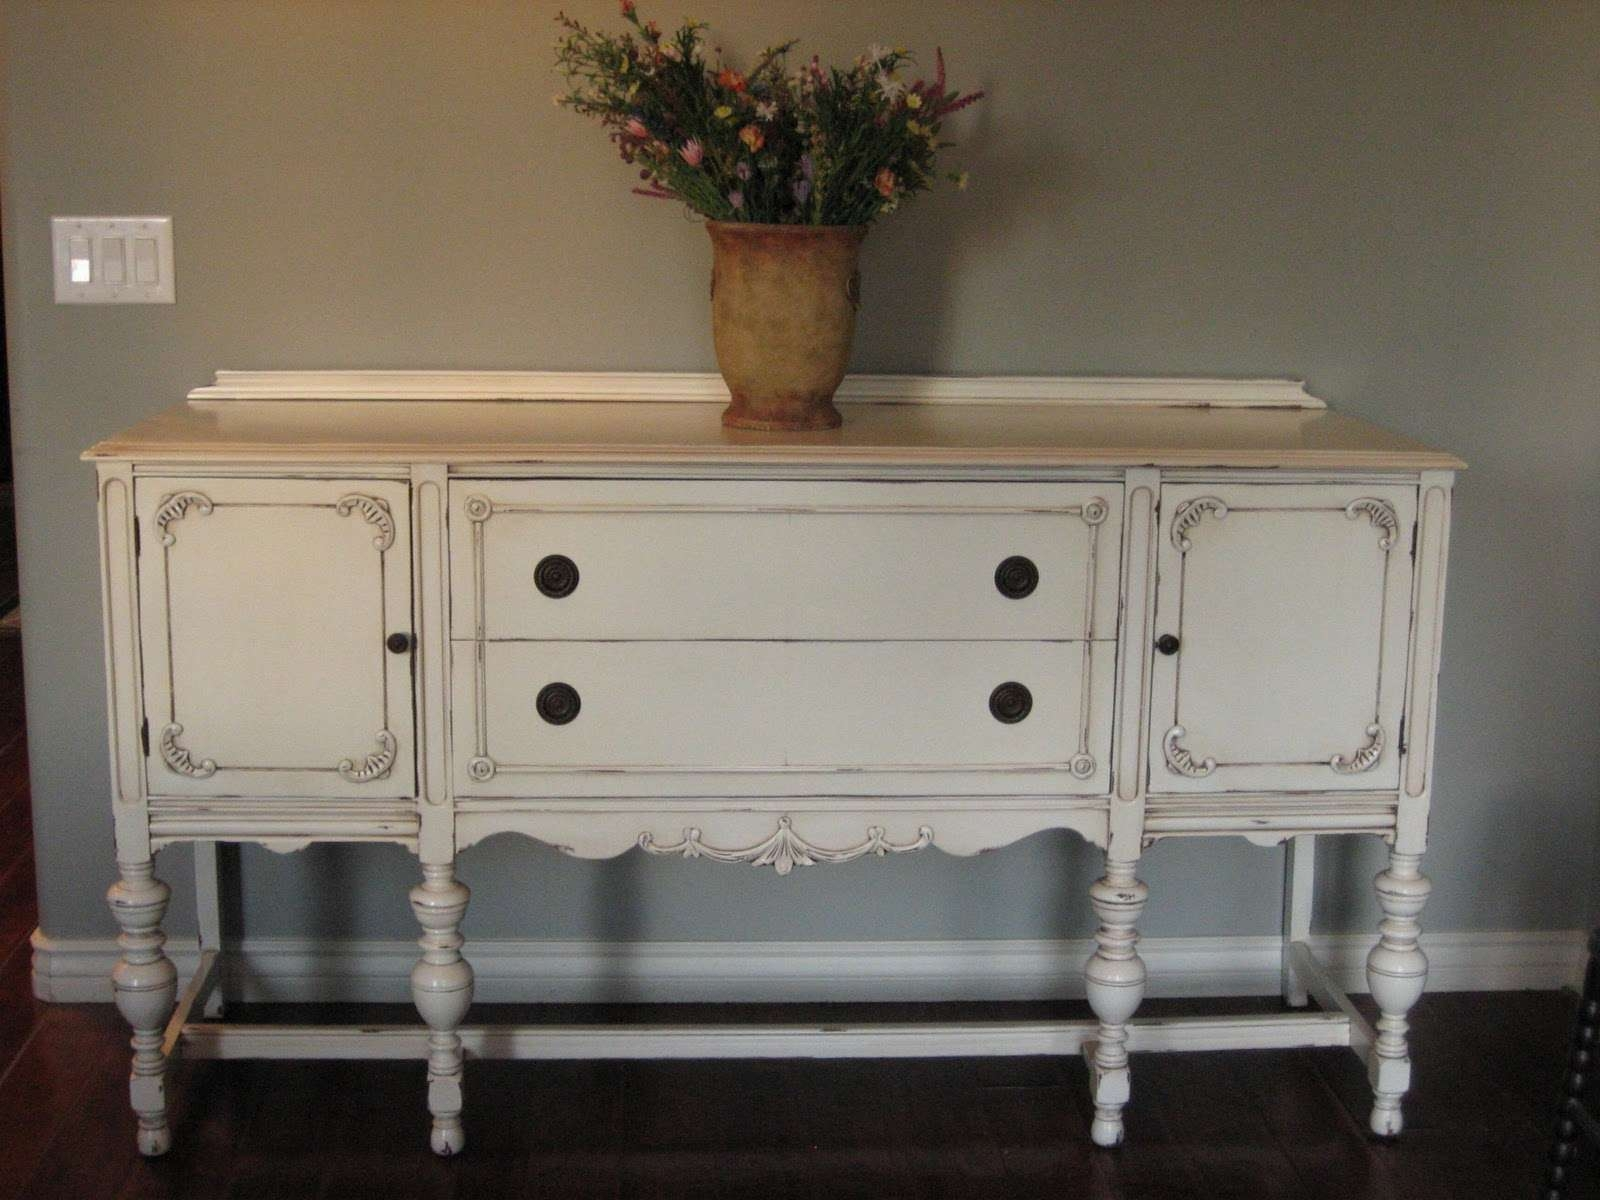 European Paint Finishes: ~ Another Pretty Antique Sideboard ~ Intended For Vintage Sideboards And Buffets (View 4 of 20)